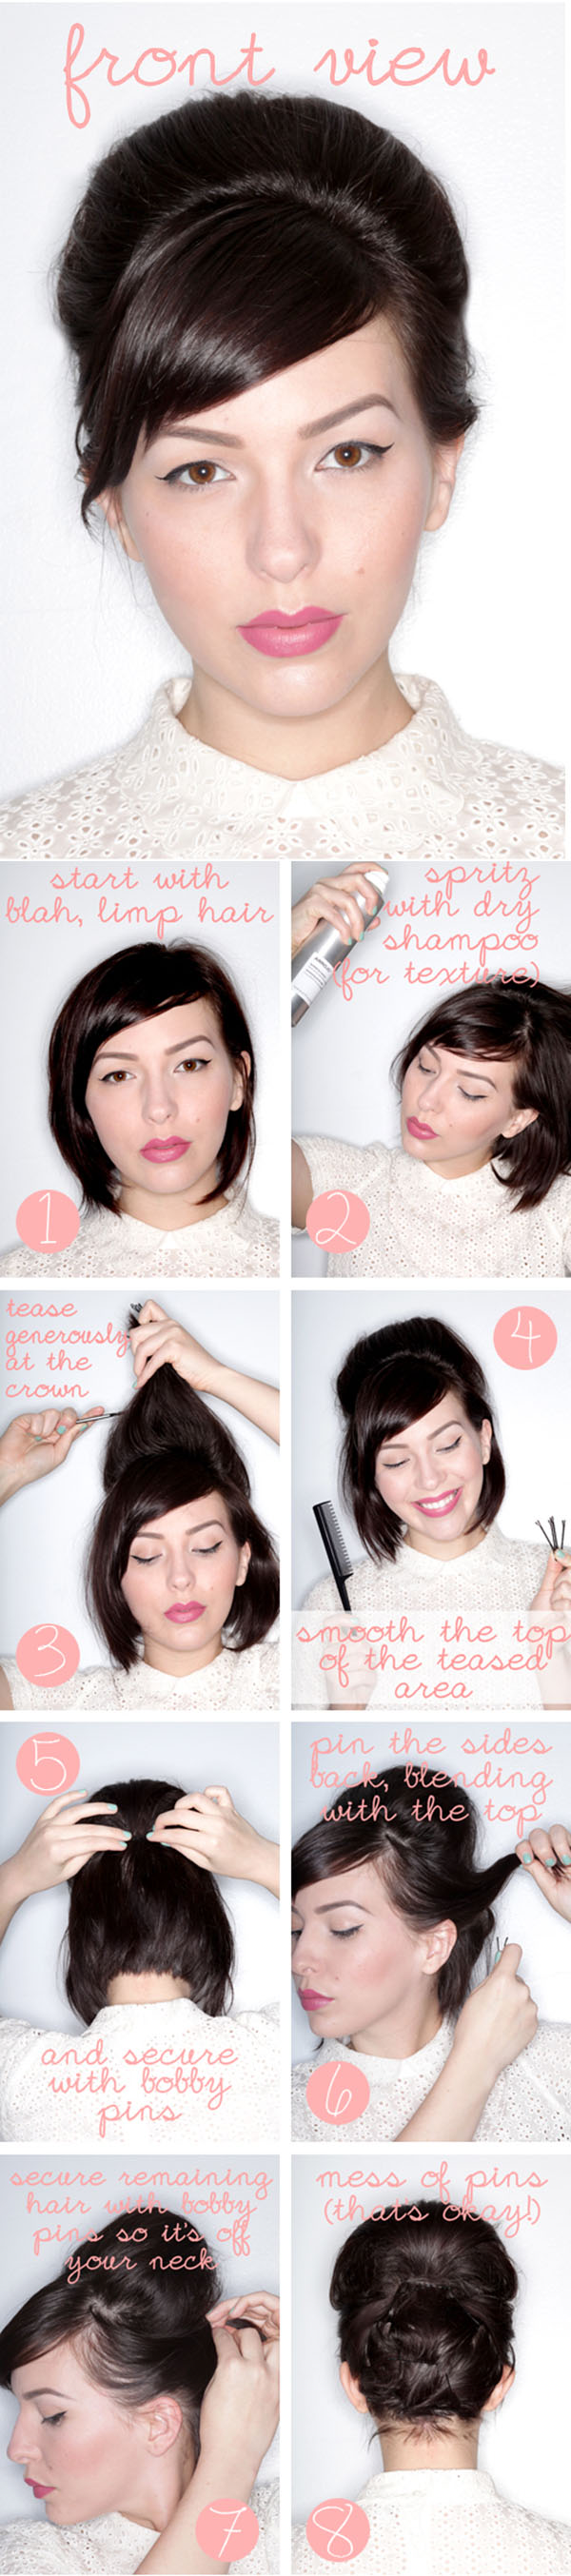 Keiko Lynn - updo for short hair tutorial